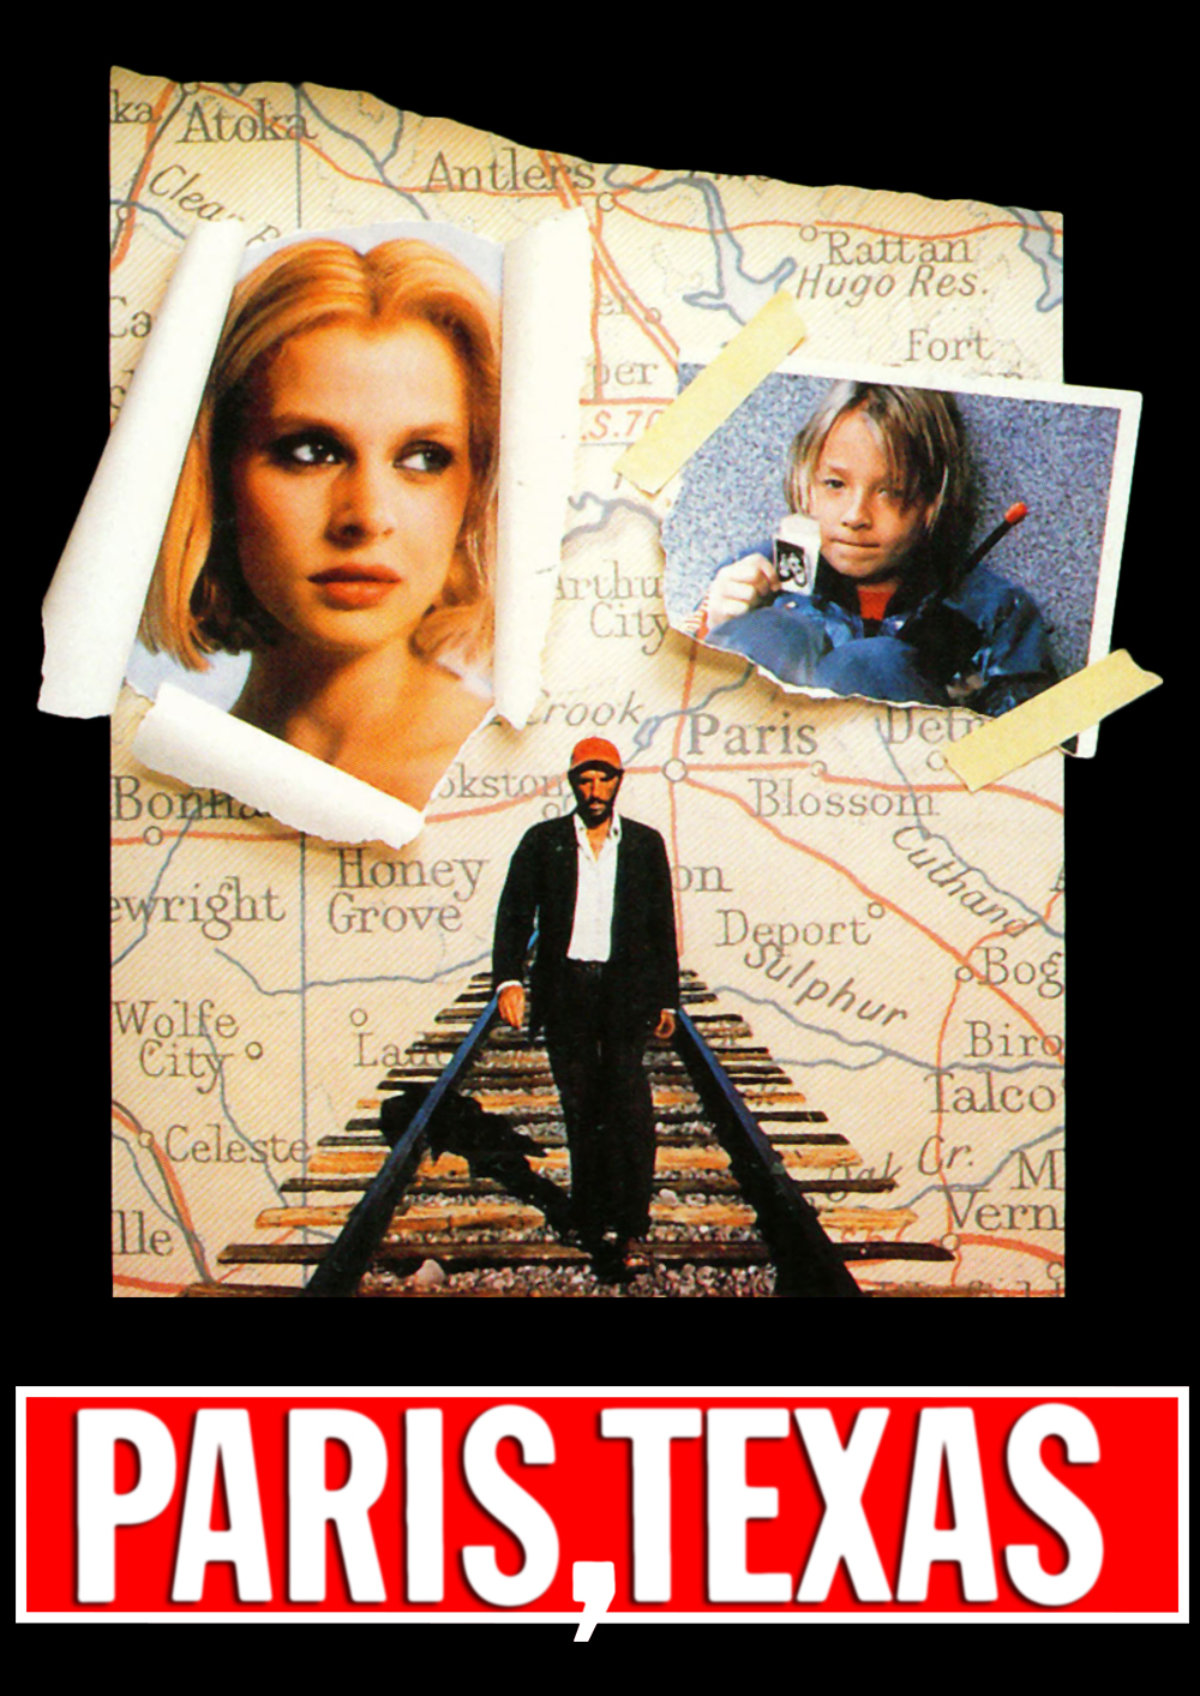 'Paris, Texas' movie poster